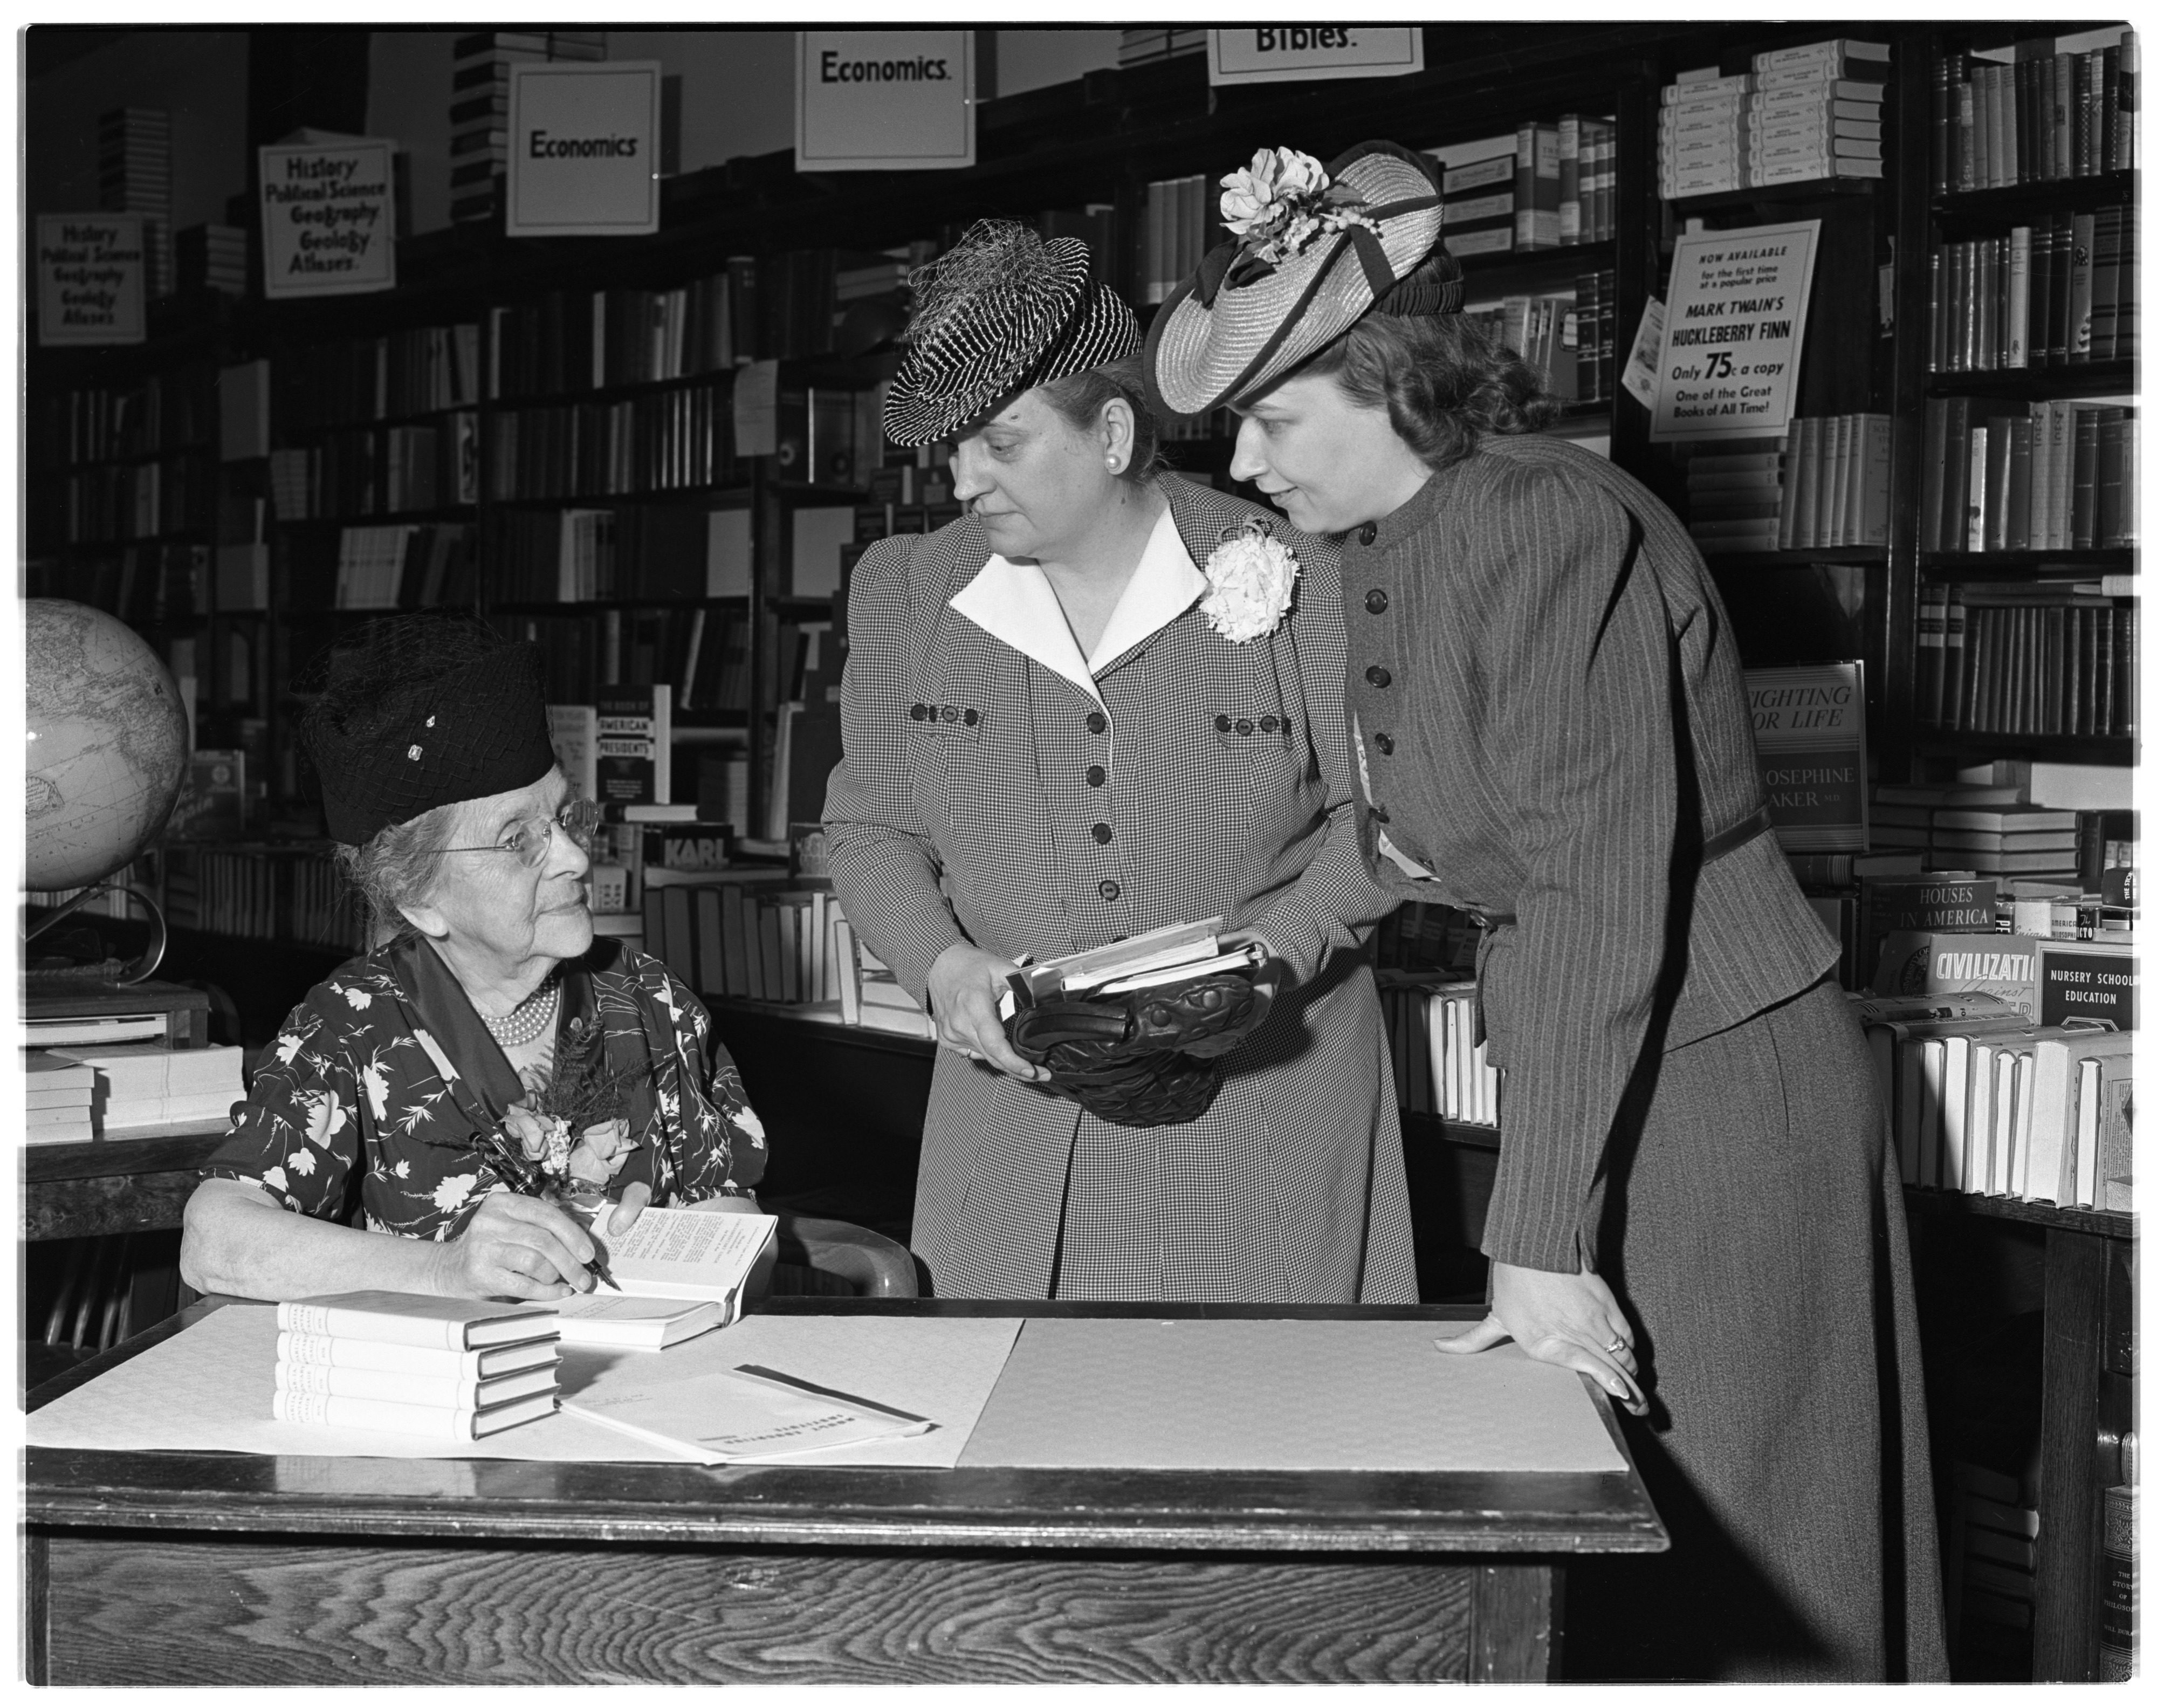 Emma Fox Autographs Her Book 'Parliamentary Law' At Slater's Bookstore, May 1939 image